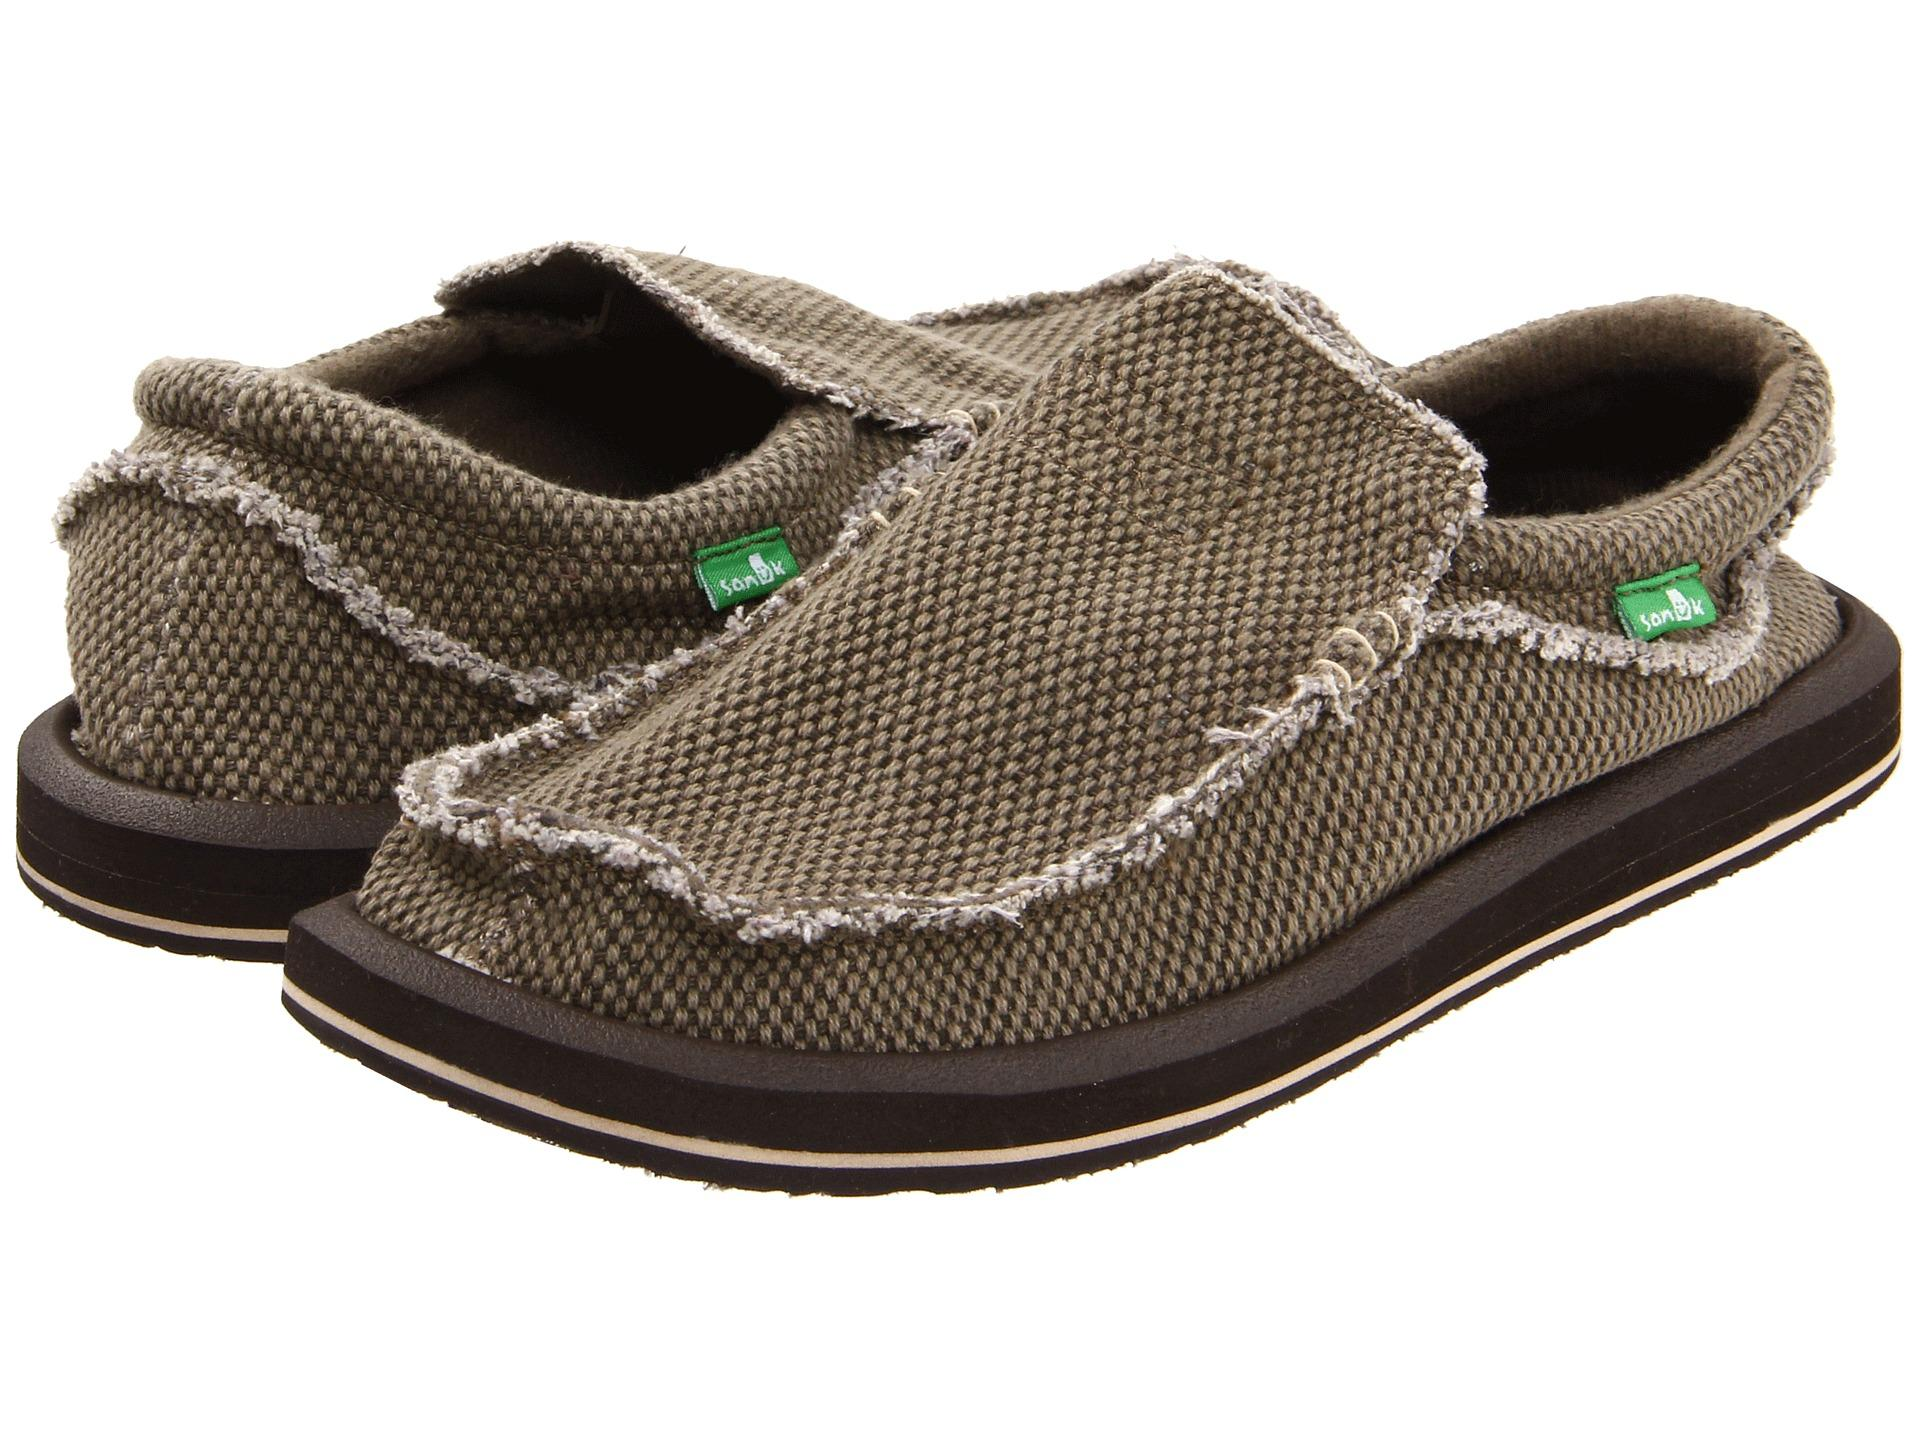 Sanuk Shoes Holiday Sale: Save up to 35% off! Shop nmuiakbosczpl.ga's selection of Sanuk shoes and sandals - over styles available including the Yoga Mat flip flop, Donna Hemp slip-on, TKO Sneaker, Yoga Sling sandal, and more.